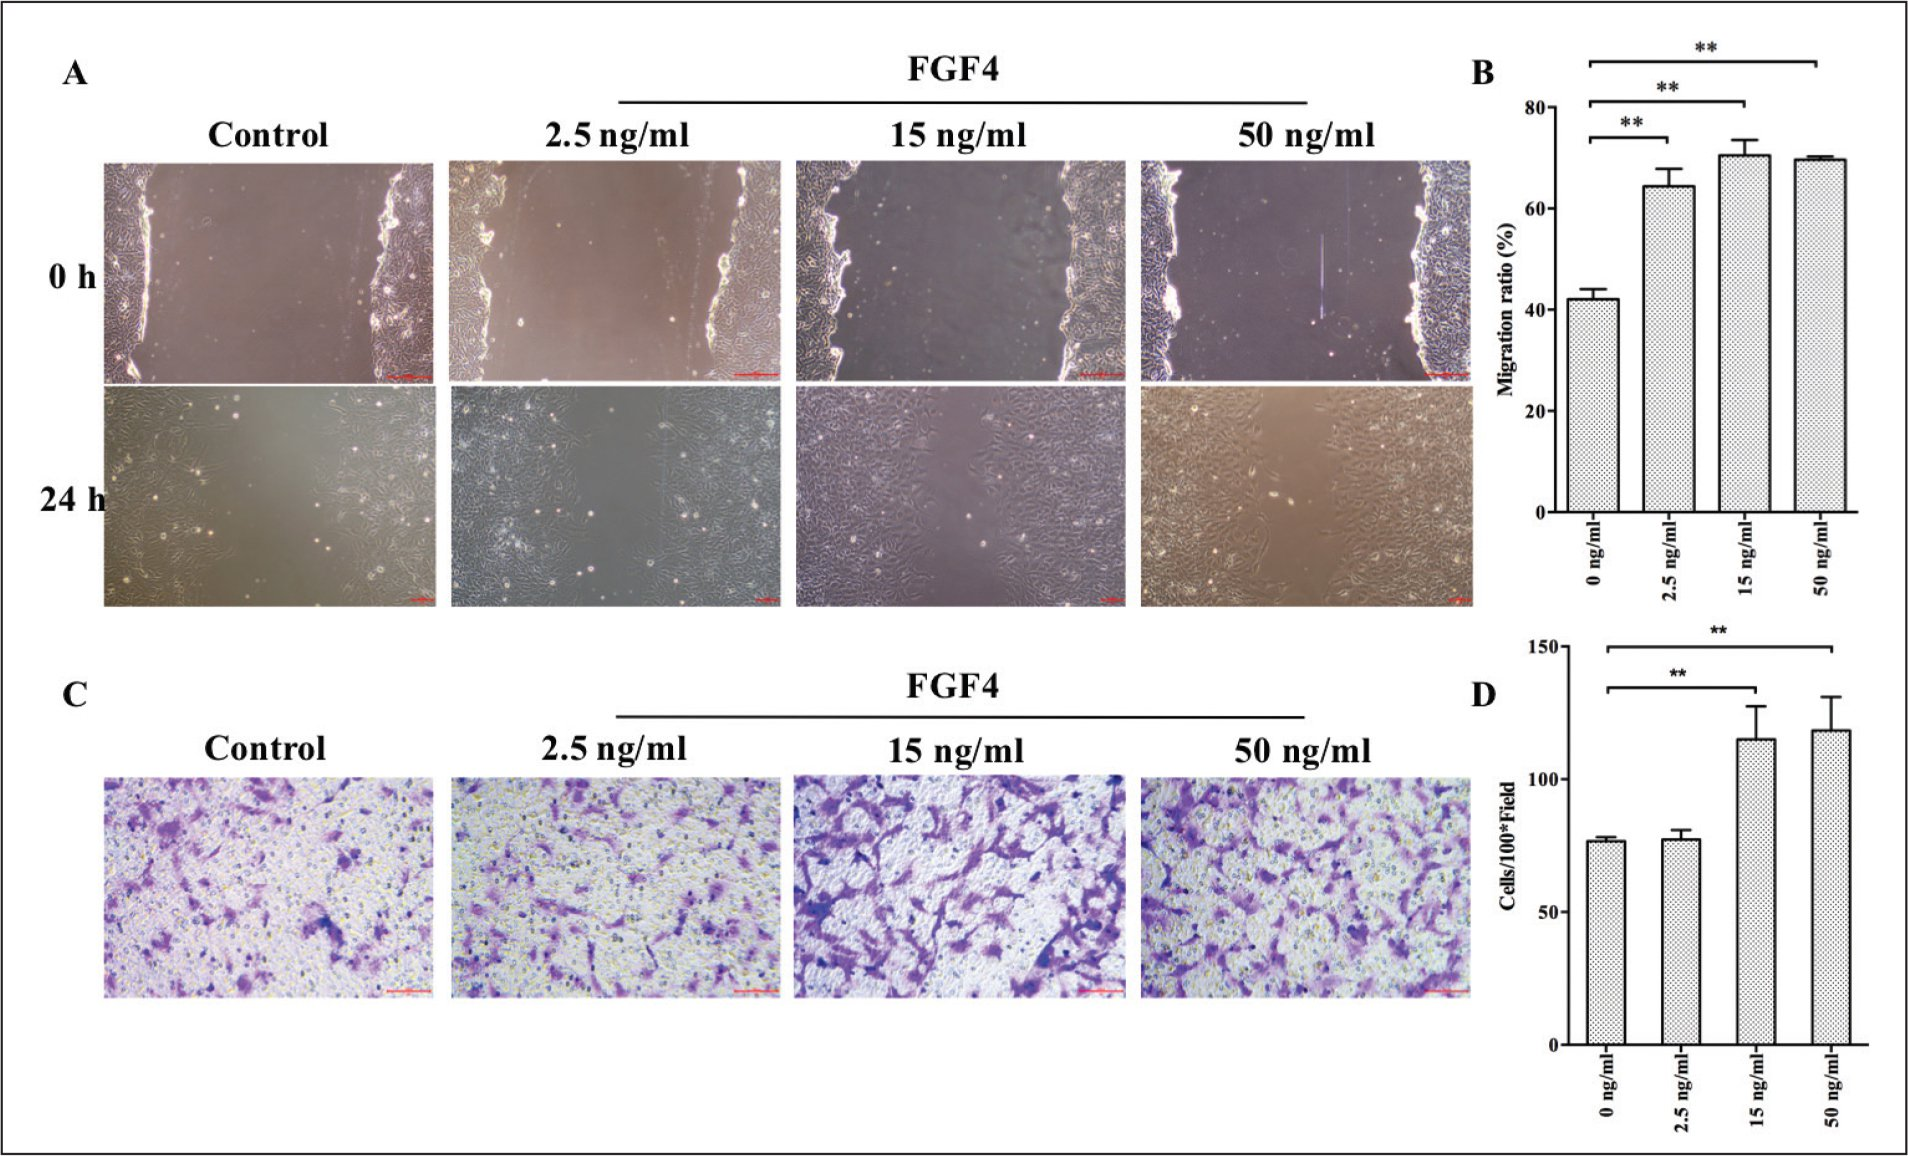 Human LEC cell line SRA01/04 (SRA) cells were treated with different doses of fibroblast growth factor 4 (FGF4) (2.5, 15, or 50 ng/mL) for 24 hours. (A) Effect on cell migration was measured with a wound-healing assay. (B) Migration rates of SRA cells are presented as means ± standard deviation (SD), and the migration of untreated control cells and cells treated with different levels of FGF4 differed significantly (**P < .001). (C) Representative images of SRA cells during Transwell migration. After migration and staining with crystal violet, images of the migrated cells (purple stained) were taken under a microscope. Bar = 100 µm. (D) Quantification of cell migration is presented as mean ± SD (of 3 microscopic fields at 100× total magnification; ** P < .001).